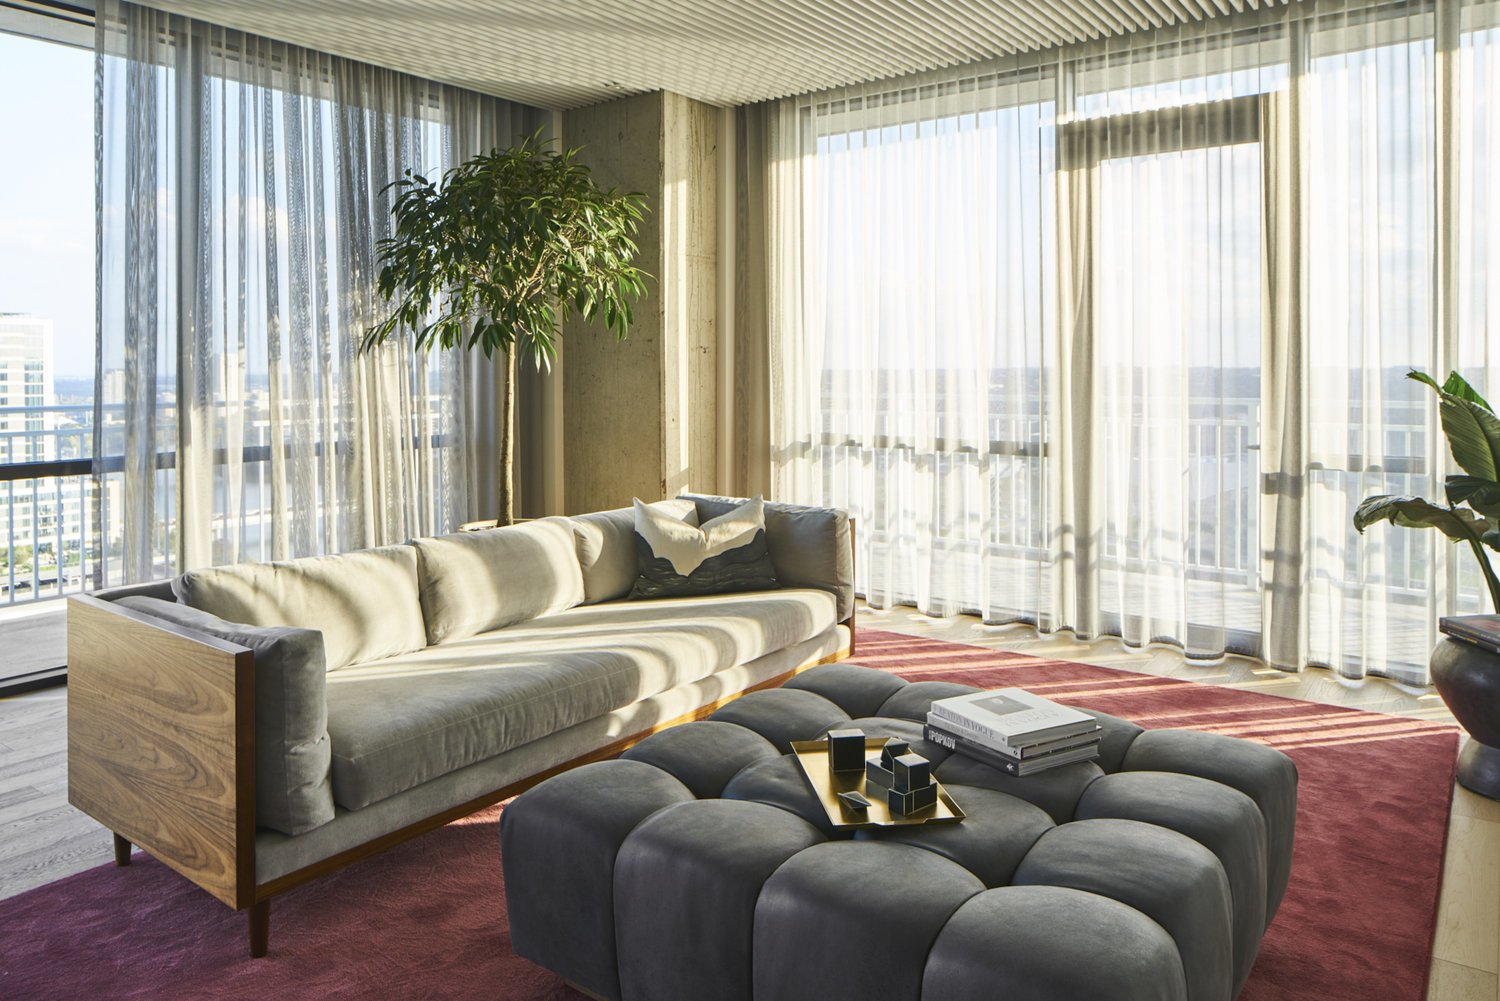 Living Room, Ottomans, Sofa, Rug Floor, Ceiling Lighting, Floor Lighting, and Light Hardwood Floor Living Room with wraparound balcony, cement walls, bubble tufted ottoman, wooden couch base, sheer curtains and red area rug.  Seaholm Custom Condo by SLIC Design